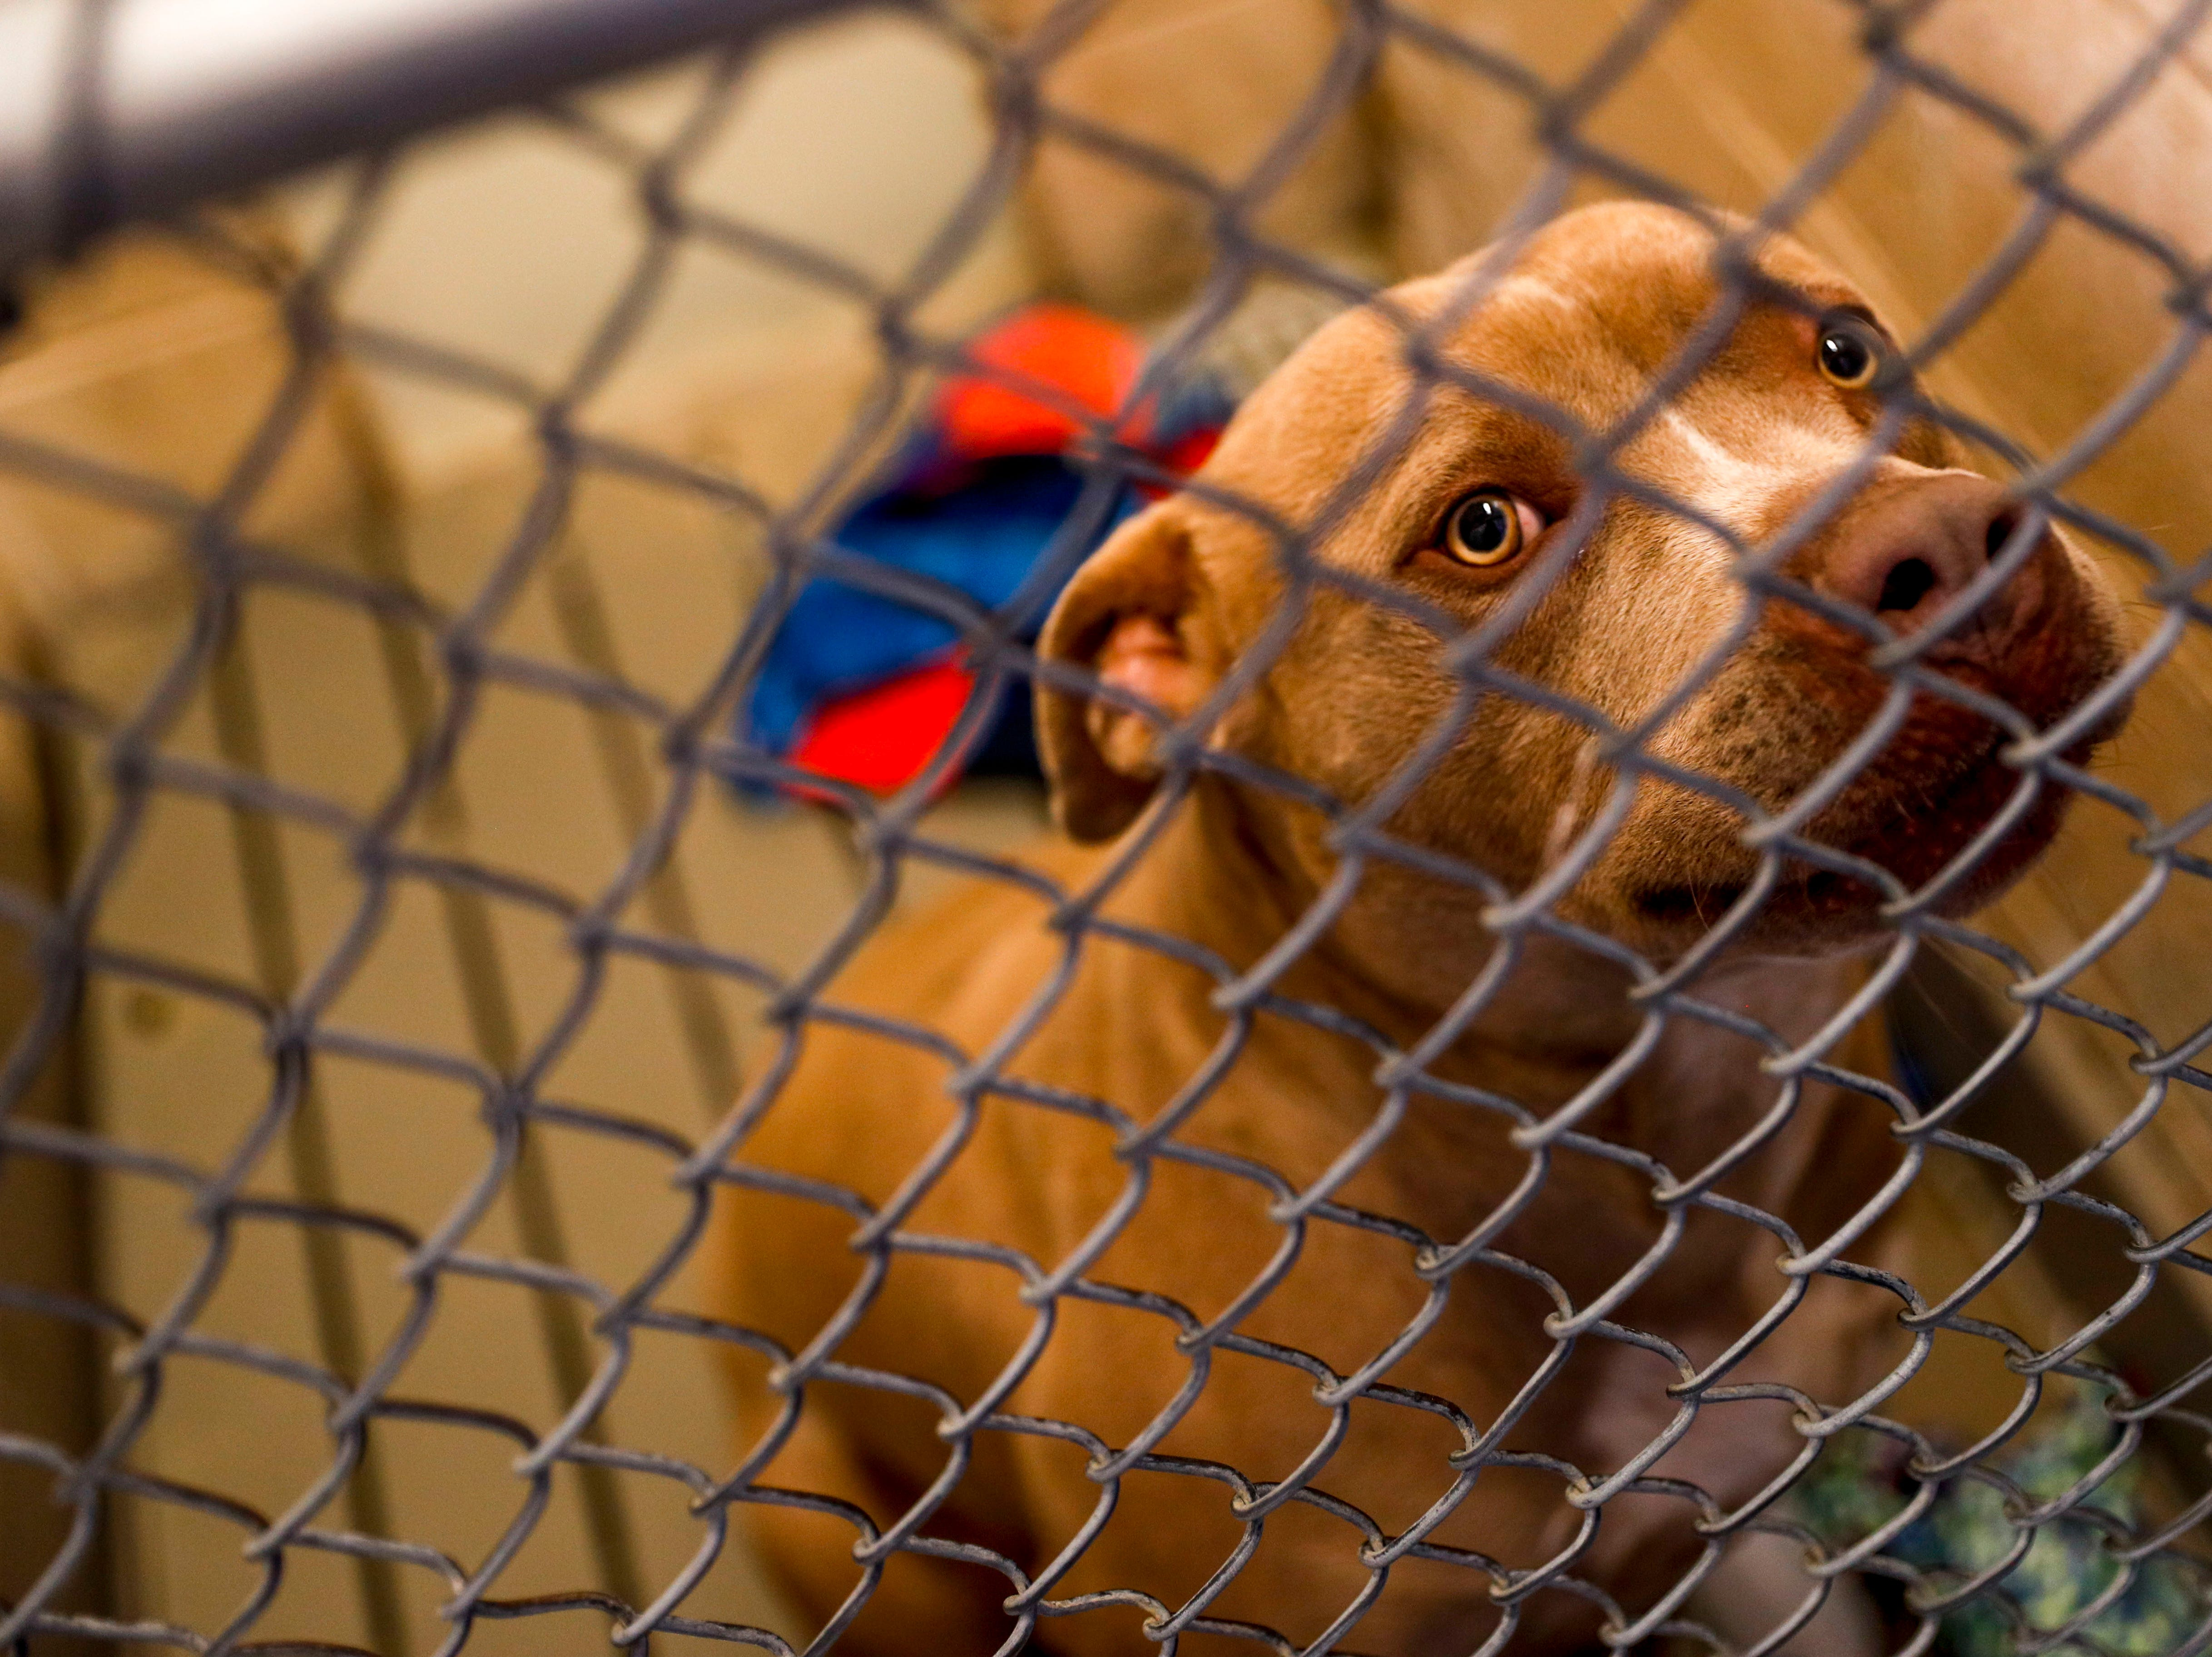 Gip, a pit bull terrier, gazes up at the camera while awaiting a family to take him home at Montgomery County Animal Care and Control in Clarksville, Tenn., on Wednesday, March 13, 2019.